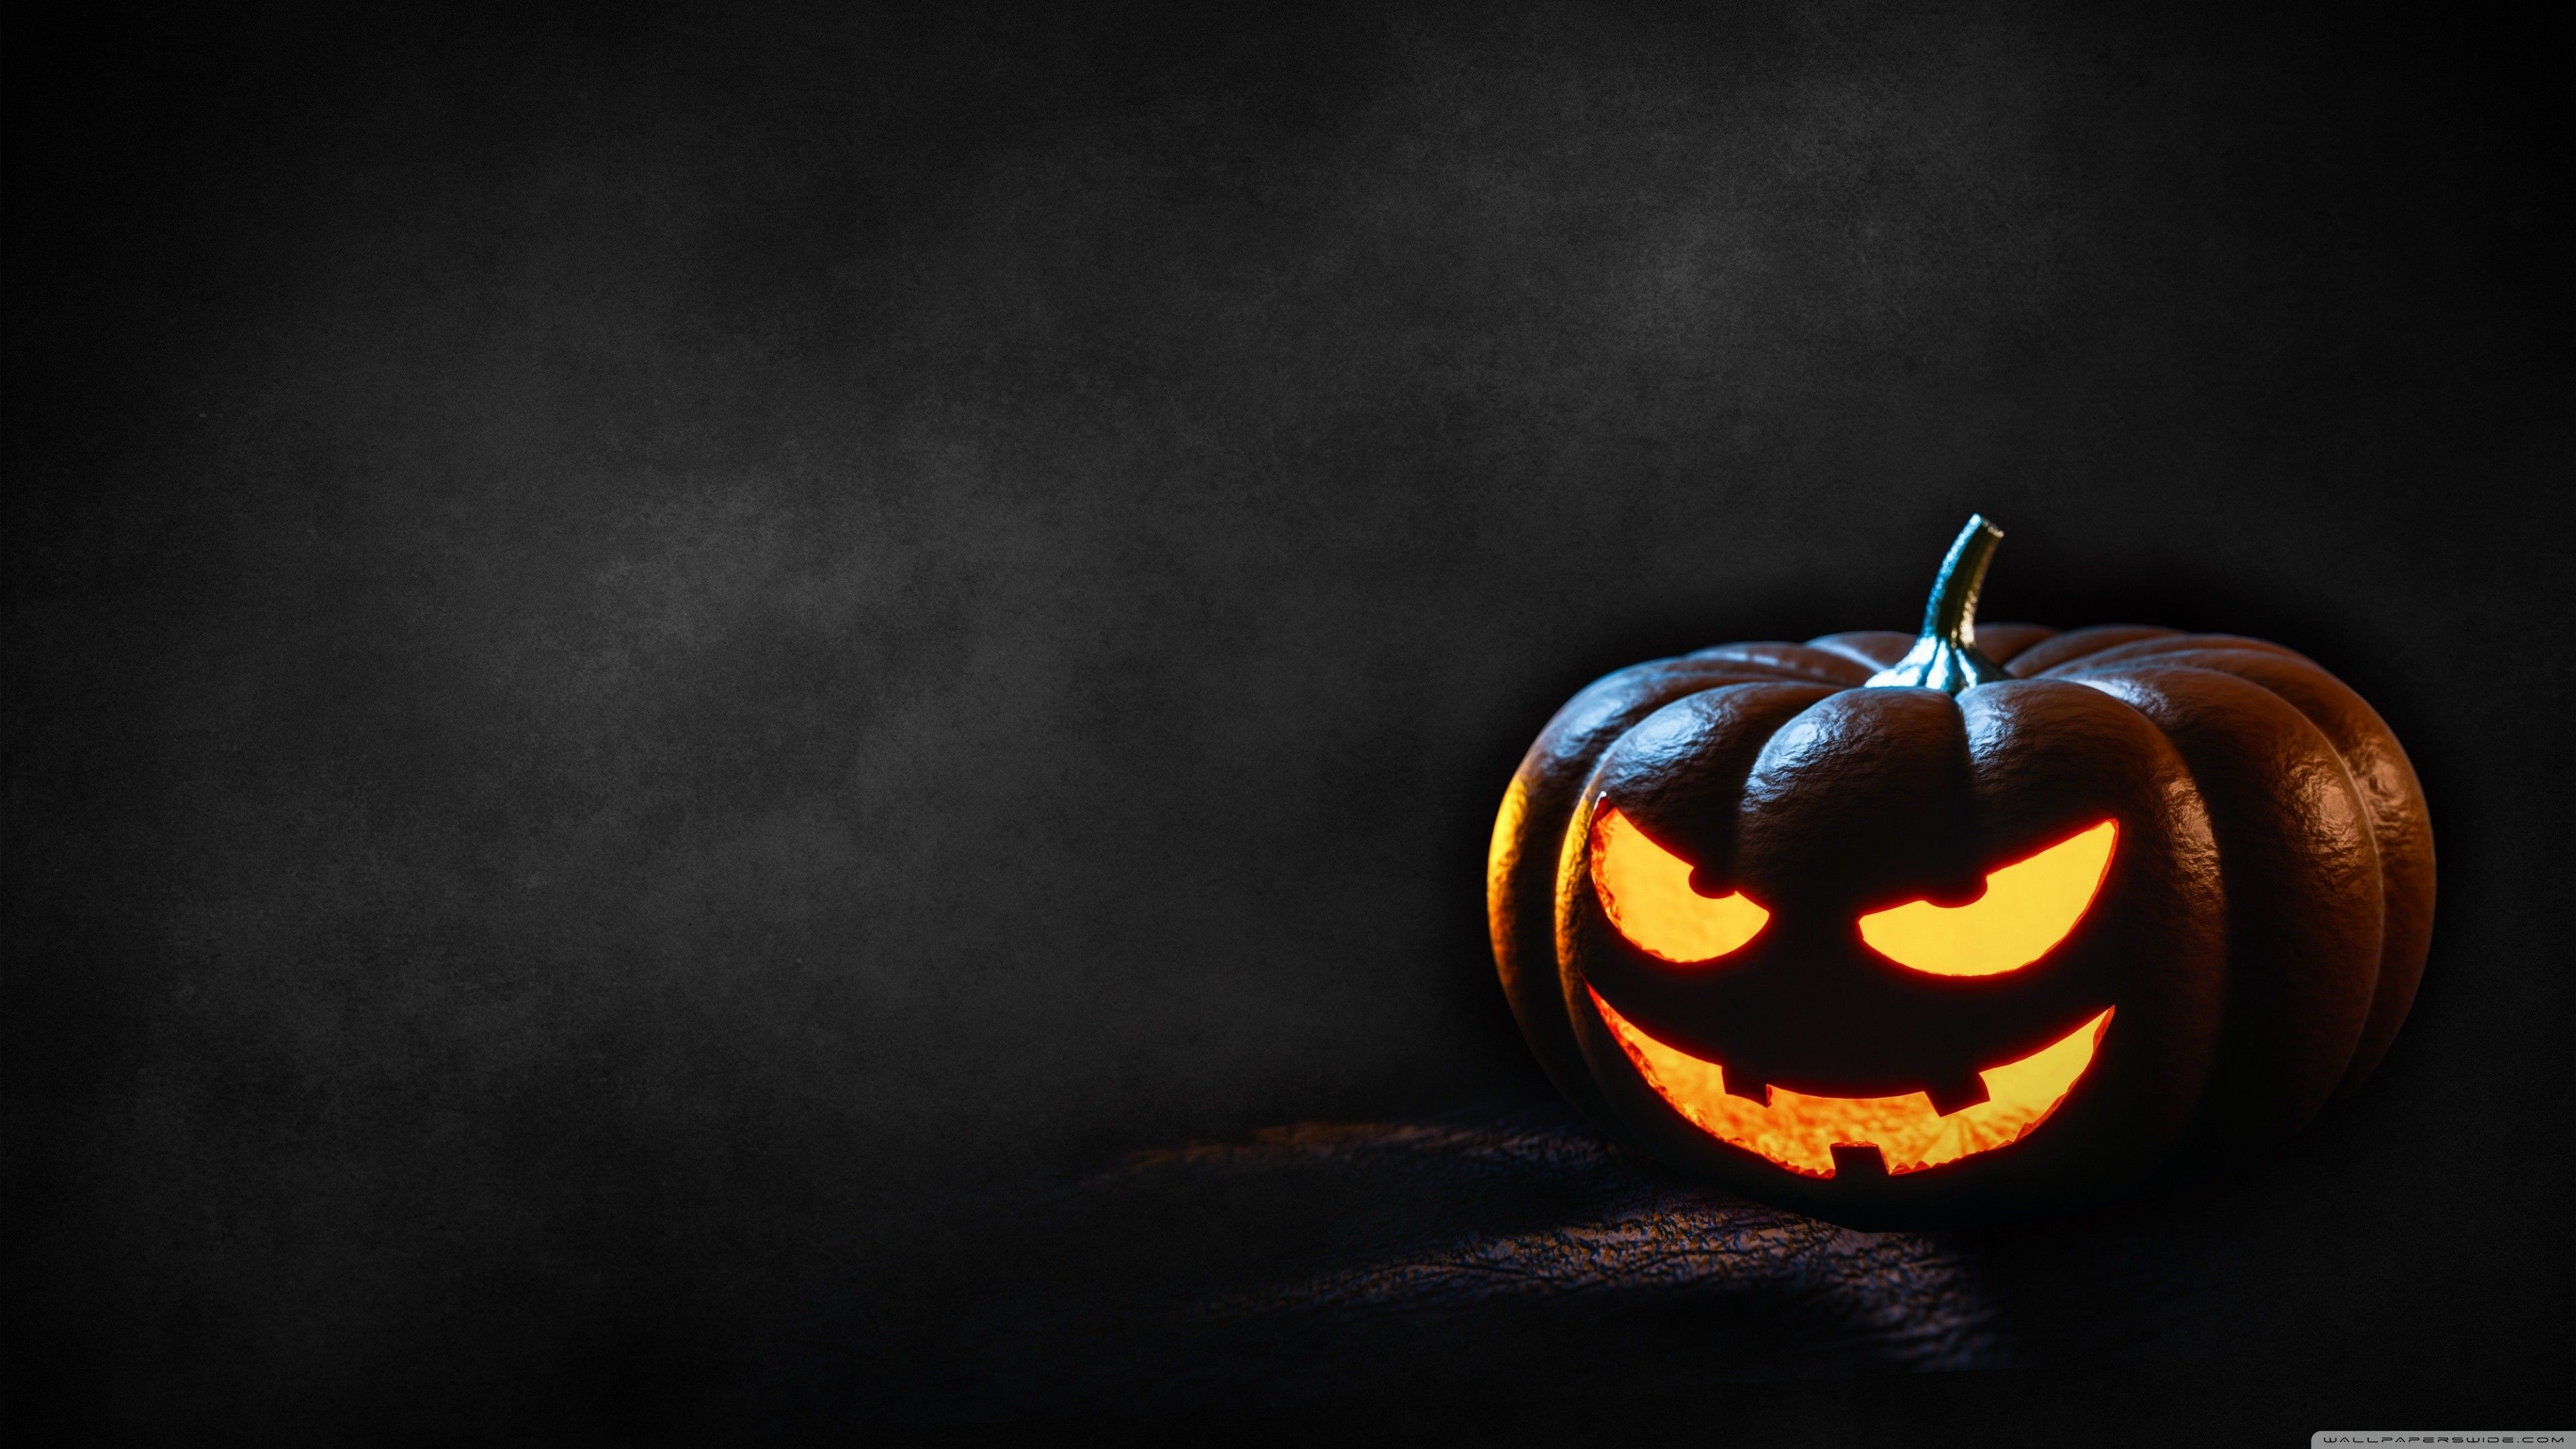 3840x2160 77+ Halloween Wallpapers on WallpaperPlay